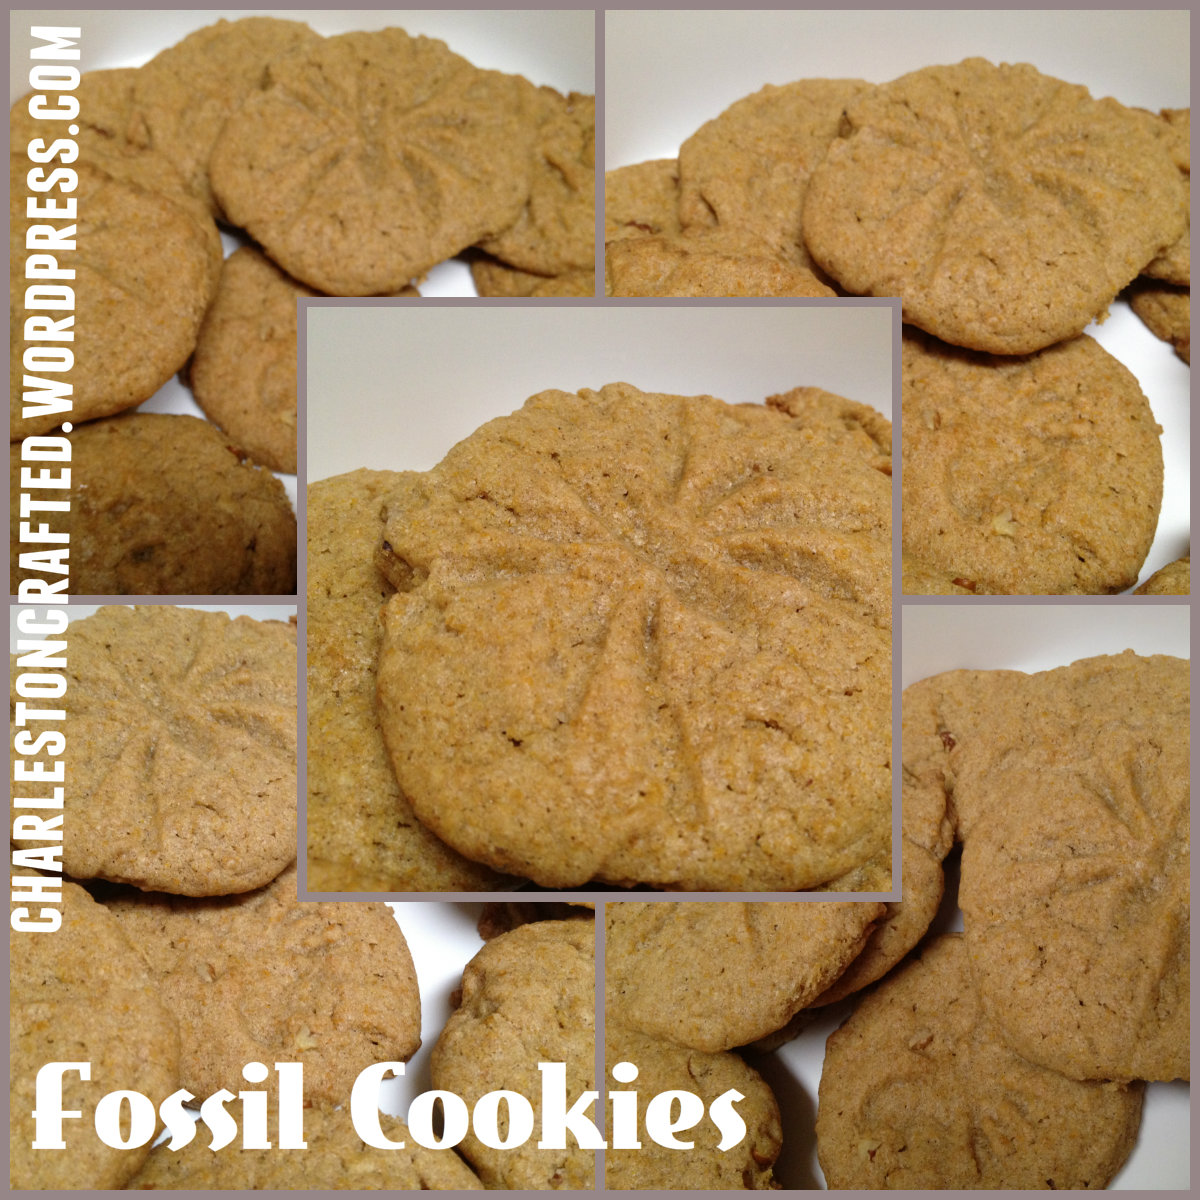 cookies butterfinger cookies seven layer cookies fossil cookies a